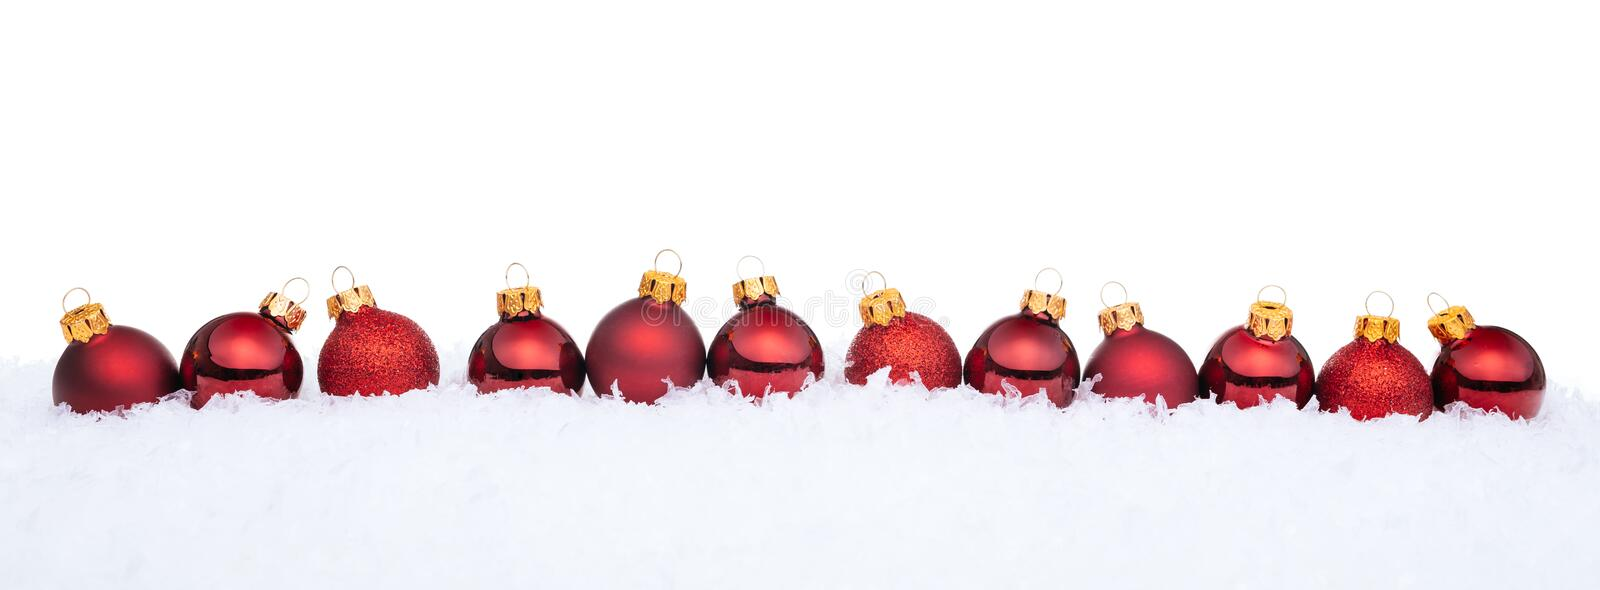 Red Christmas balls on snow. Christmas background royalty free stock image